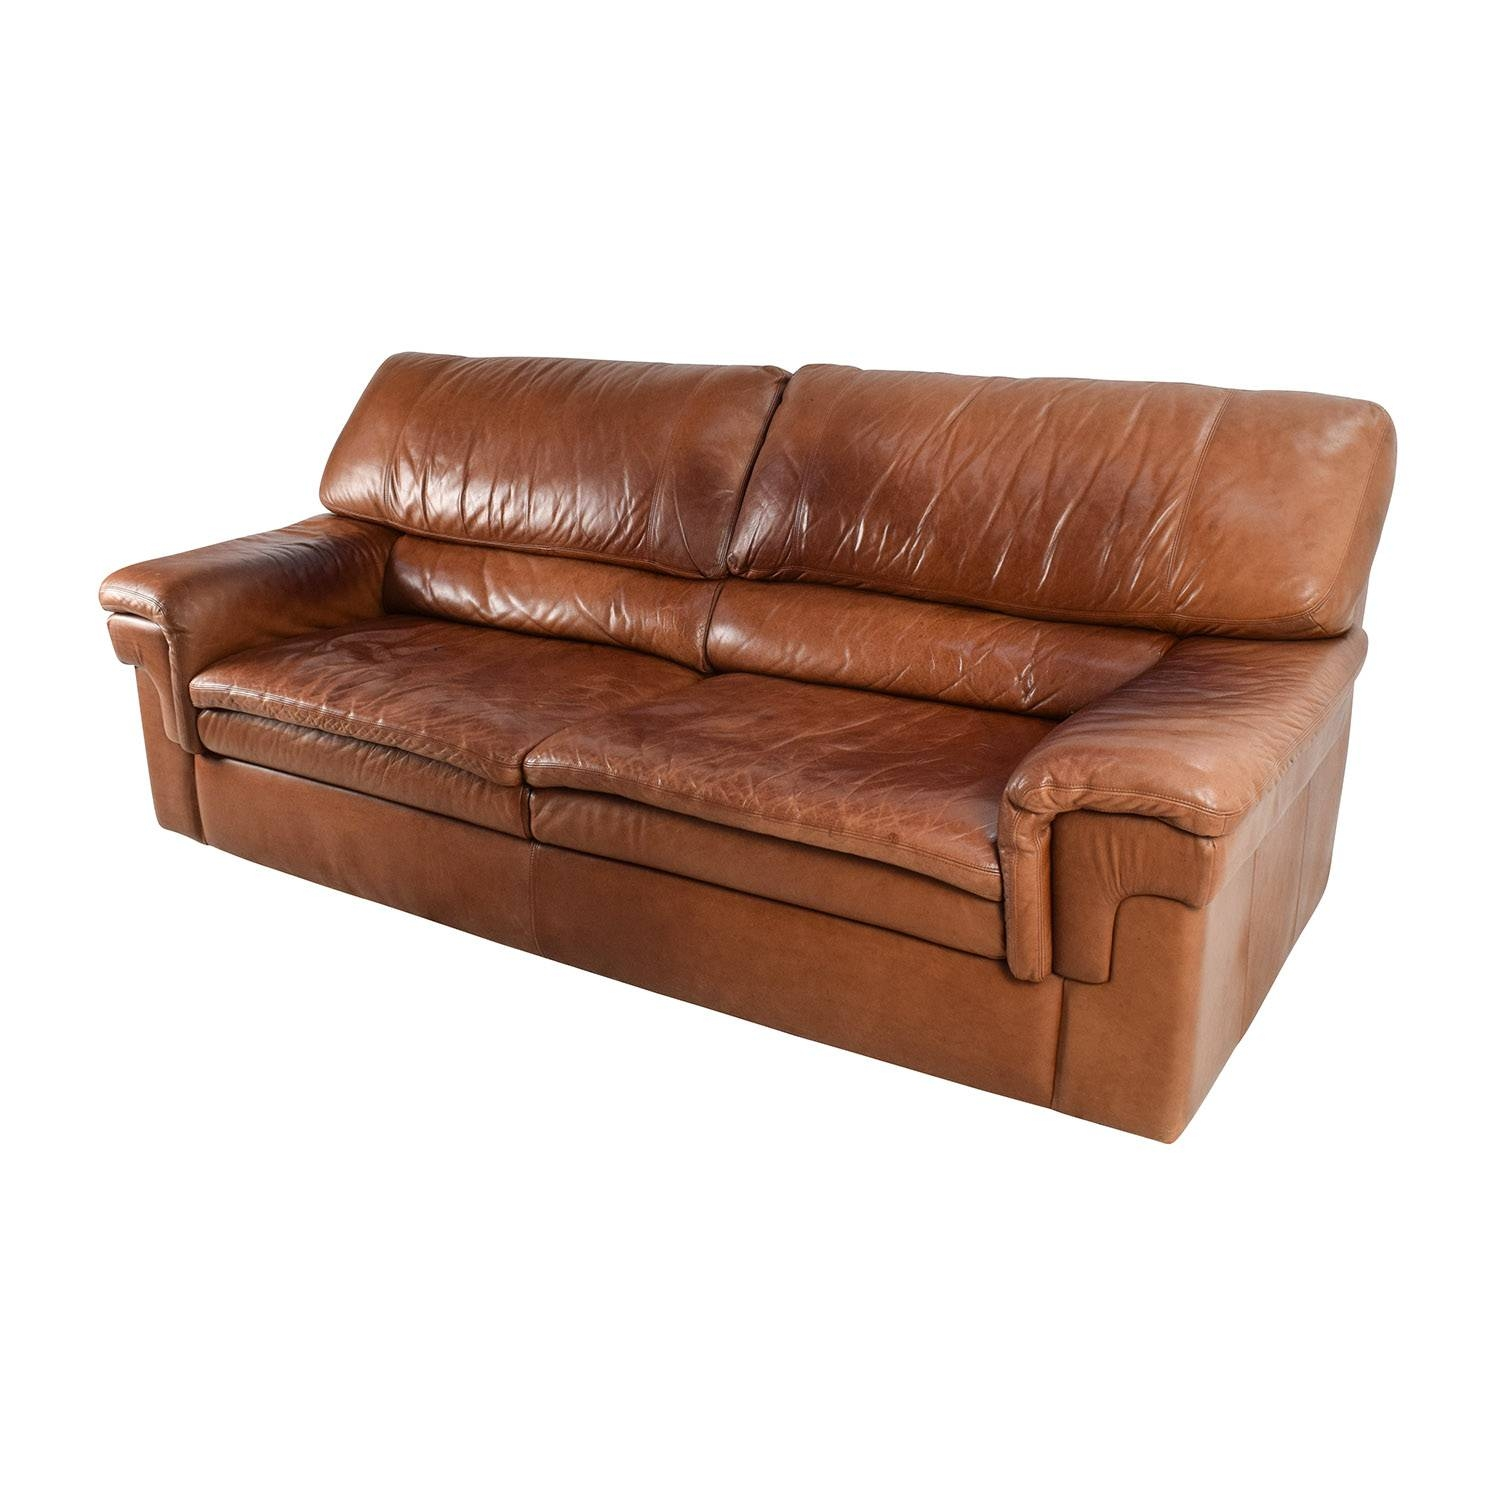 71% Off - Classic Cherry Brown Leather Sofa / Sofas intended for Classic Sofas for Sale (Image 8 of 30)